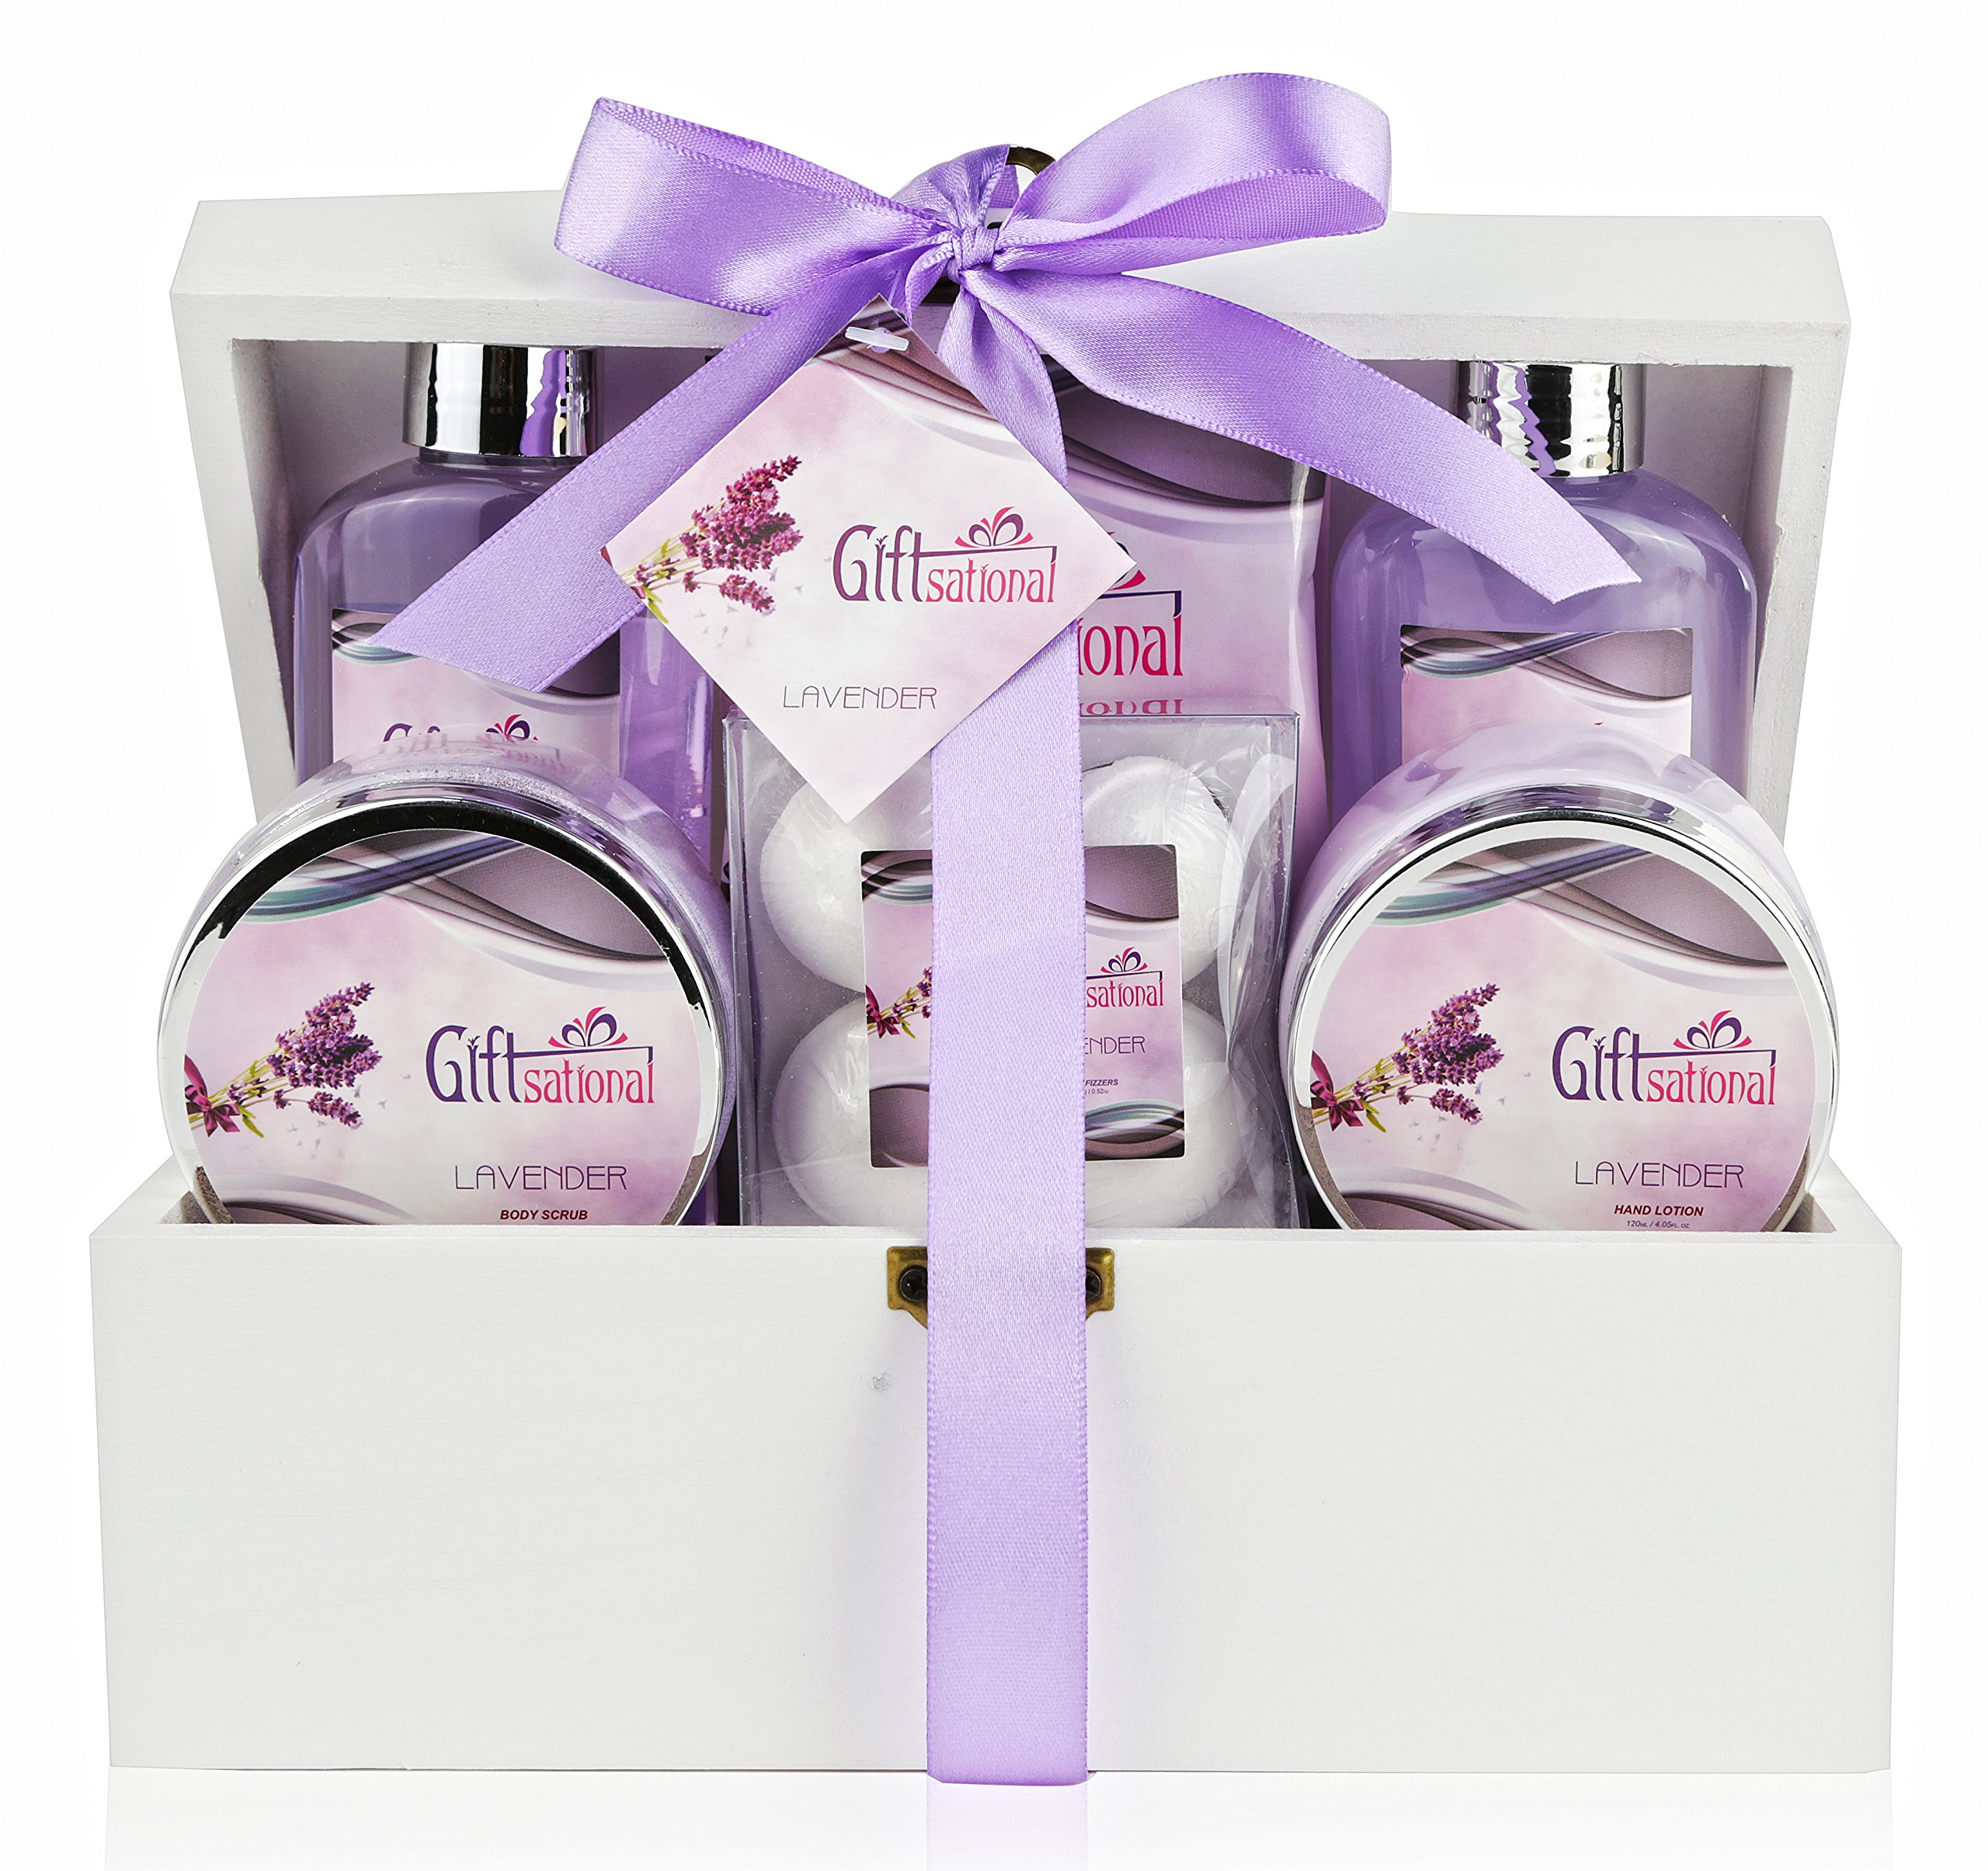 Spa Gift Basket with Sensual Lavender Fragrance - Best Mother's Day, Wedding, Birthday or Anniversary Gift for Women - Bath Gift Set Includes Shower Gel, Bubble Bath, Bath Salts, Bath Bombs and More!